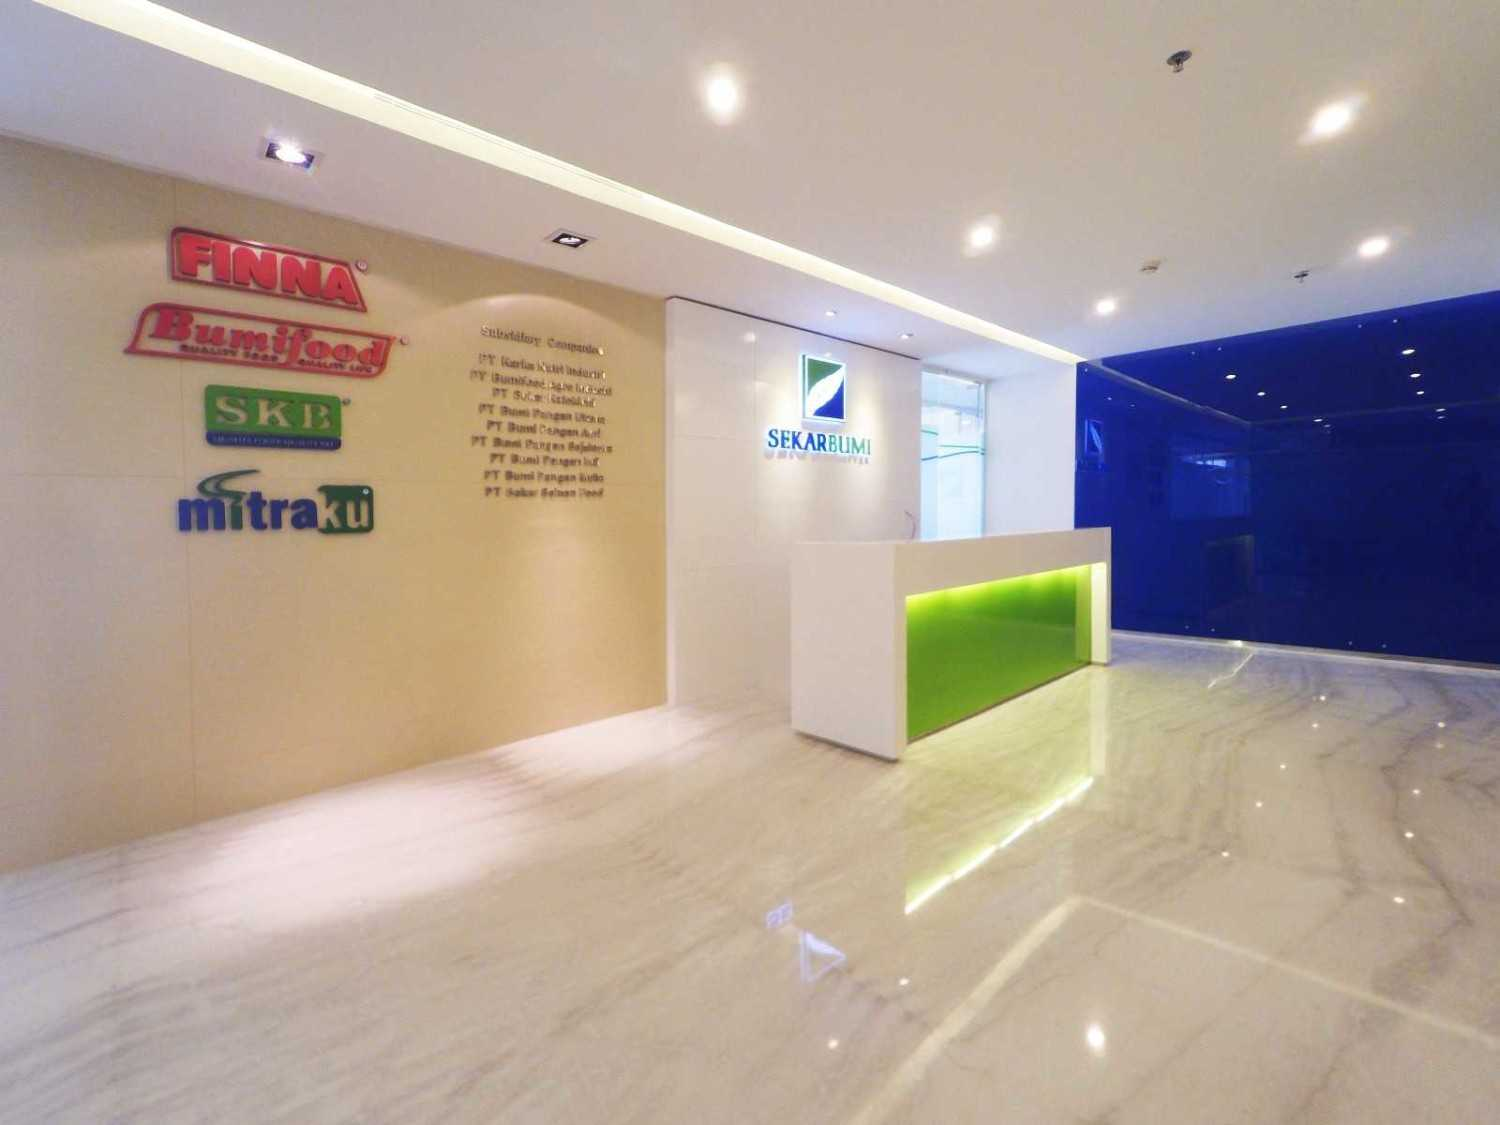 Arkadia Works Sekar Bumi Office Renovation Plaza Asia 21St Floor Plaza Asia 21St Floor Reception Area  14074